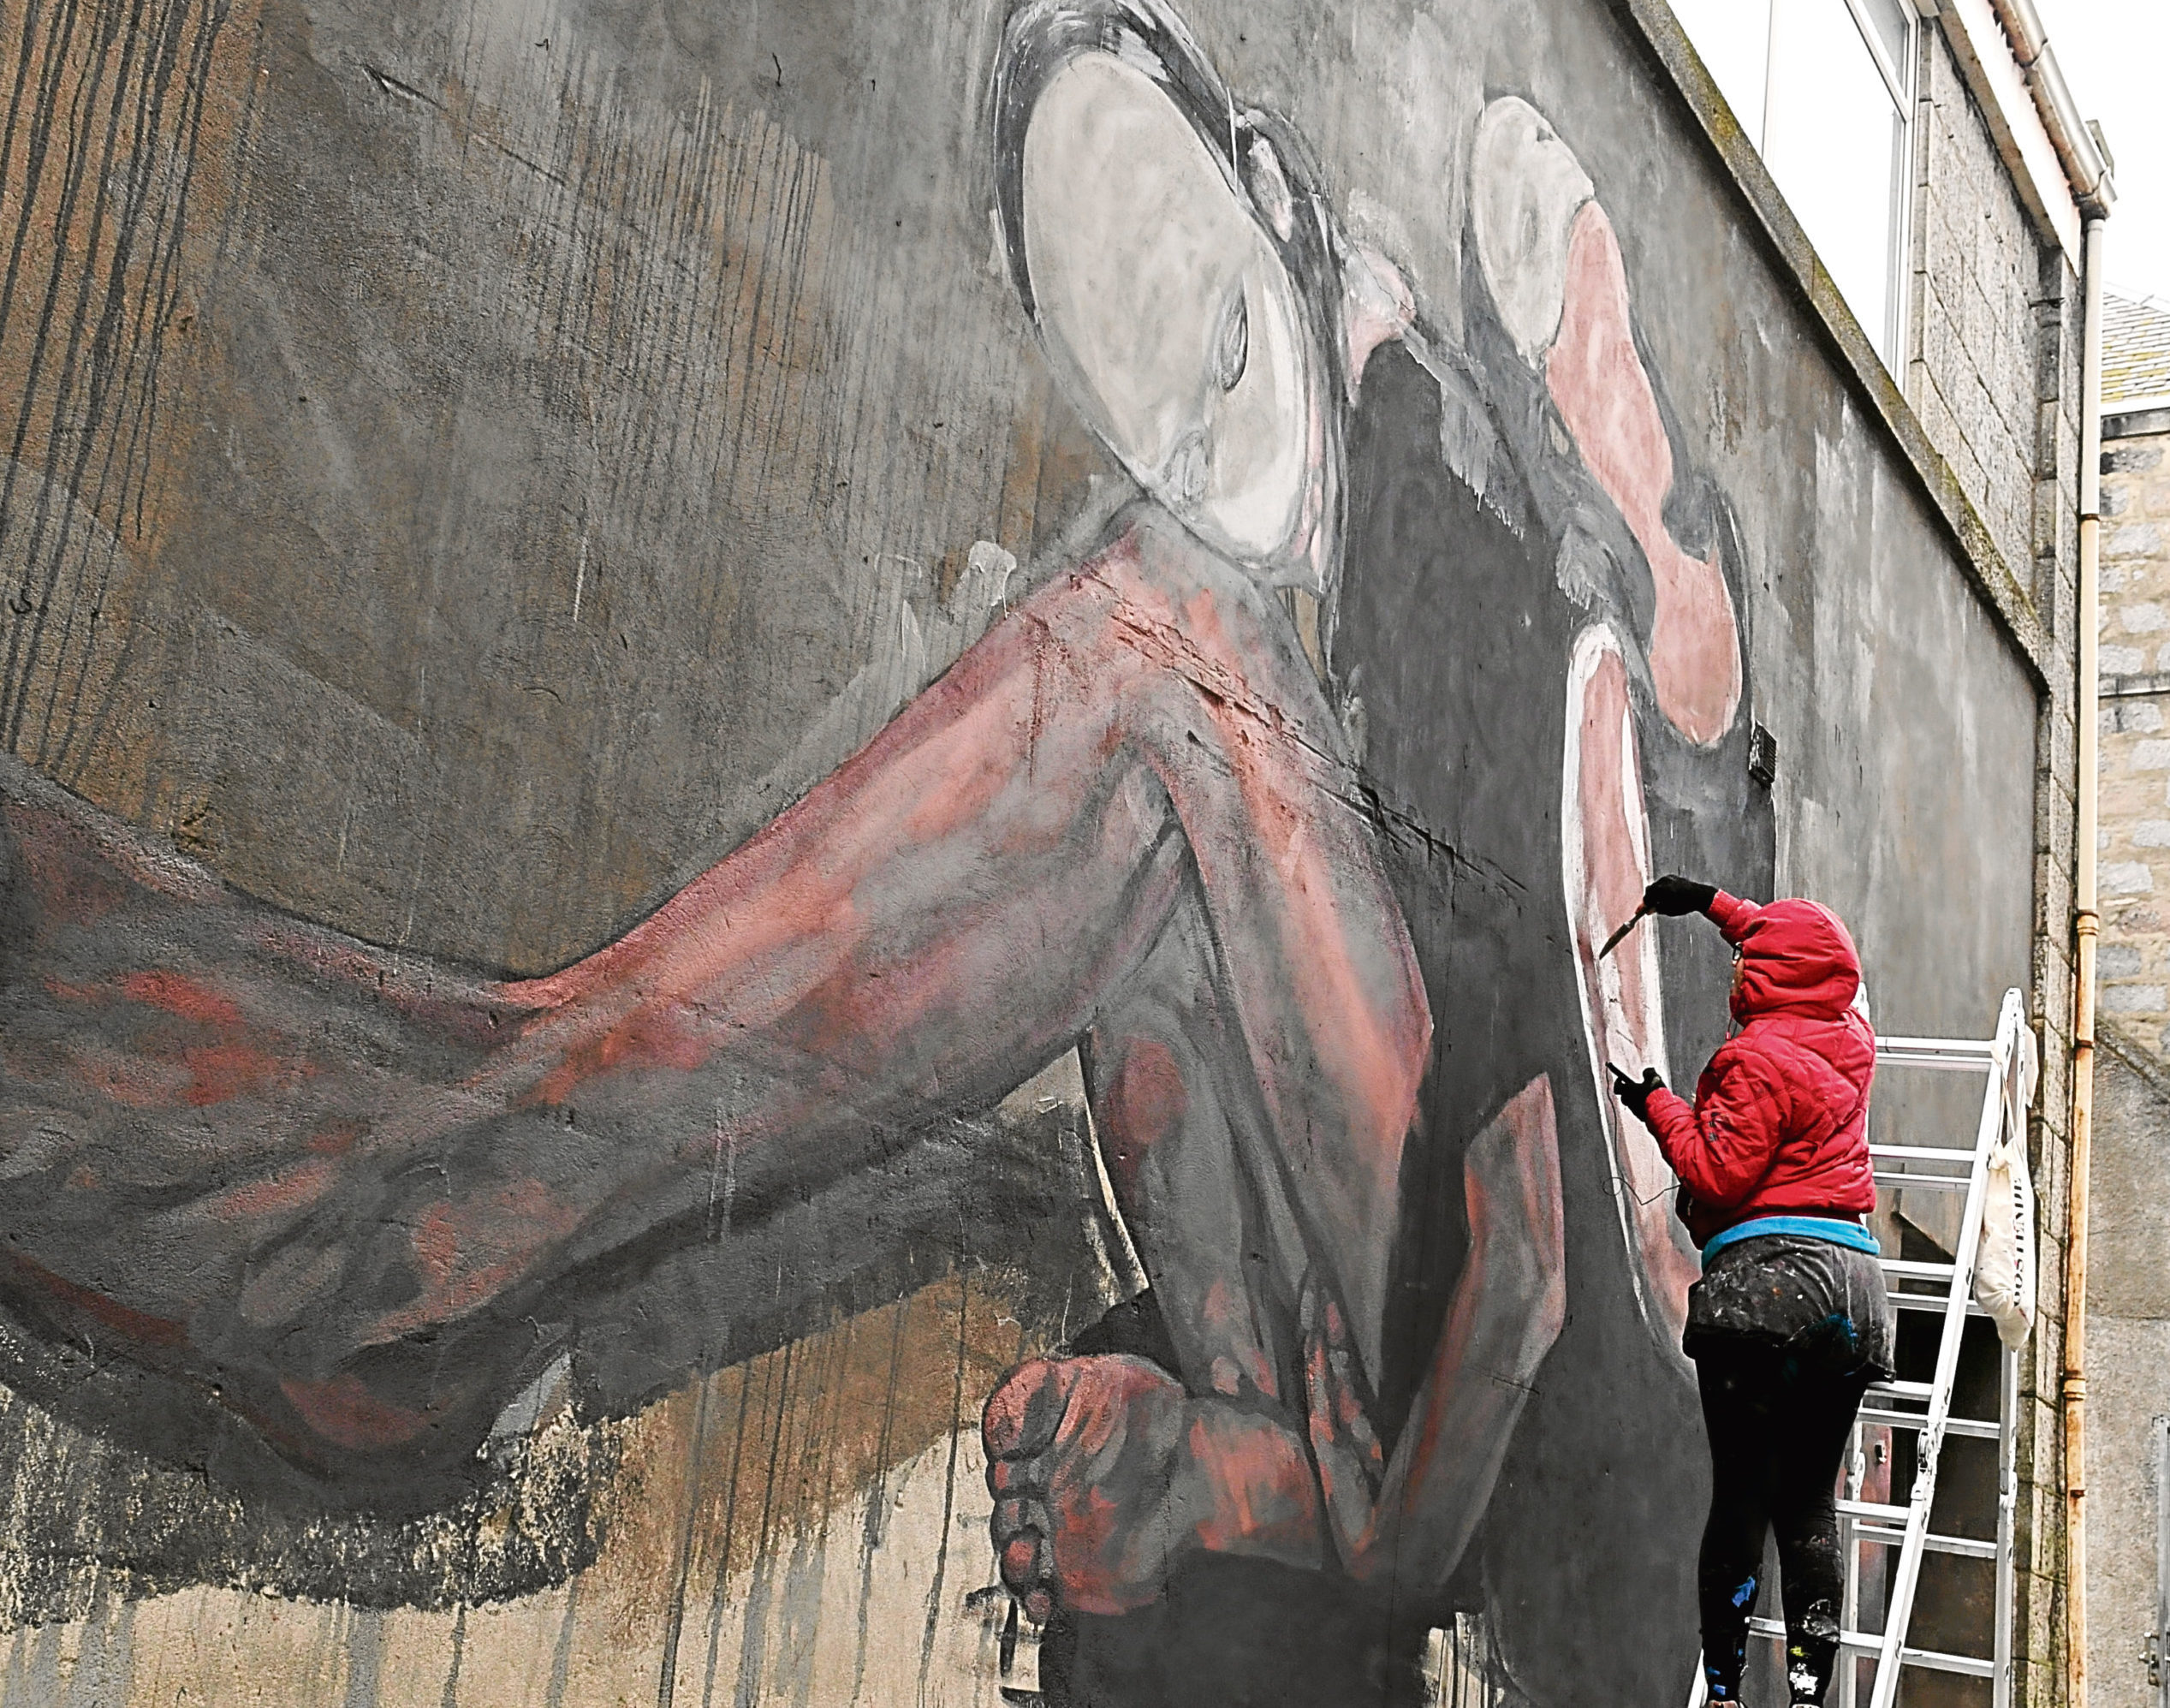 Artists begin working on a Nuart piece on Union Row